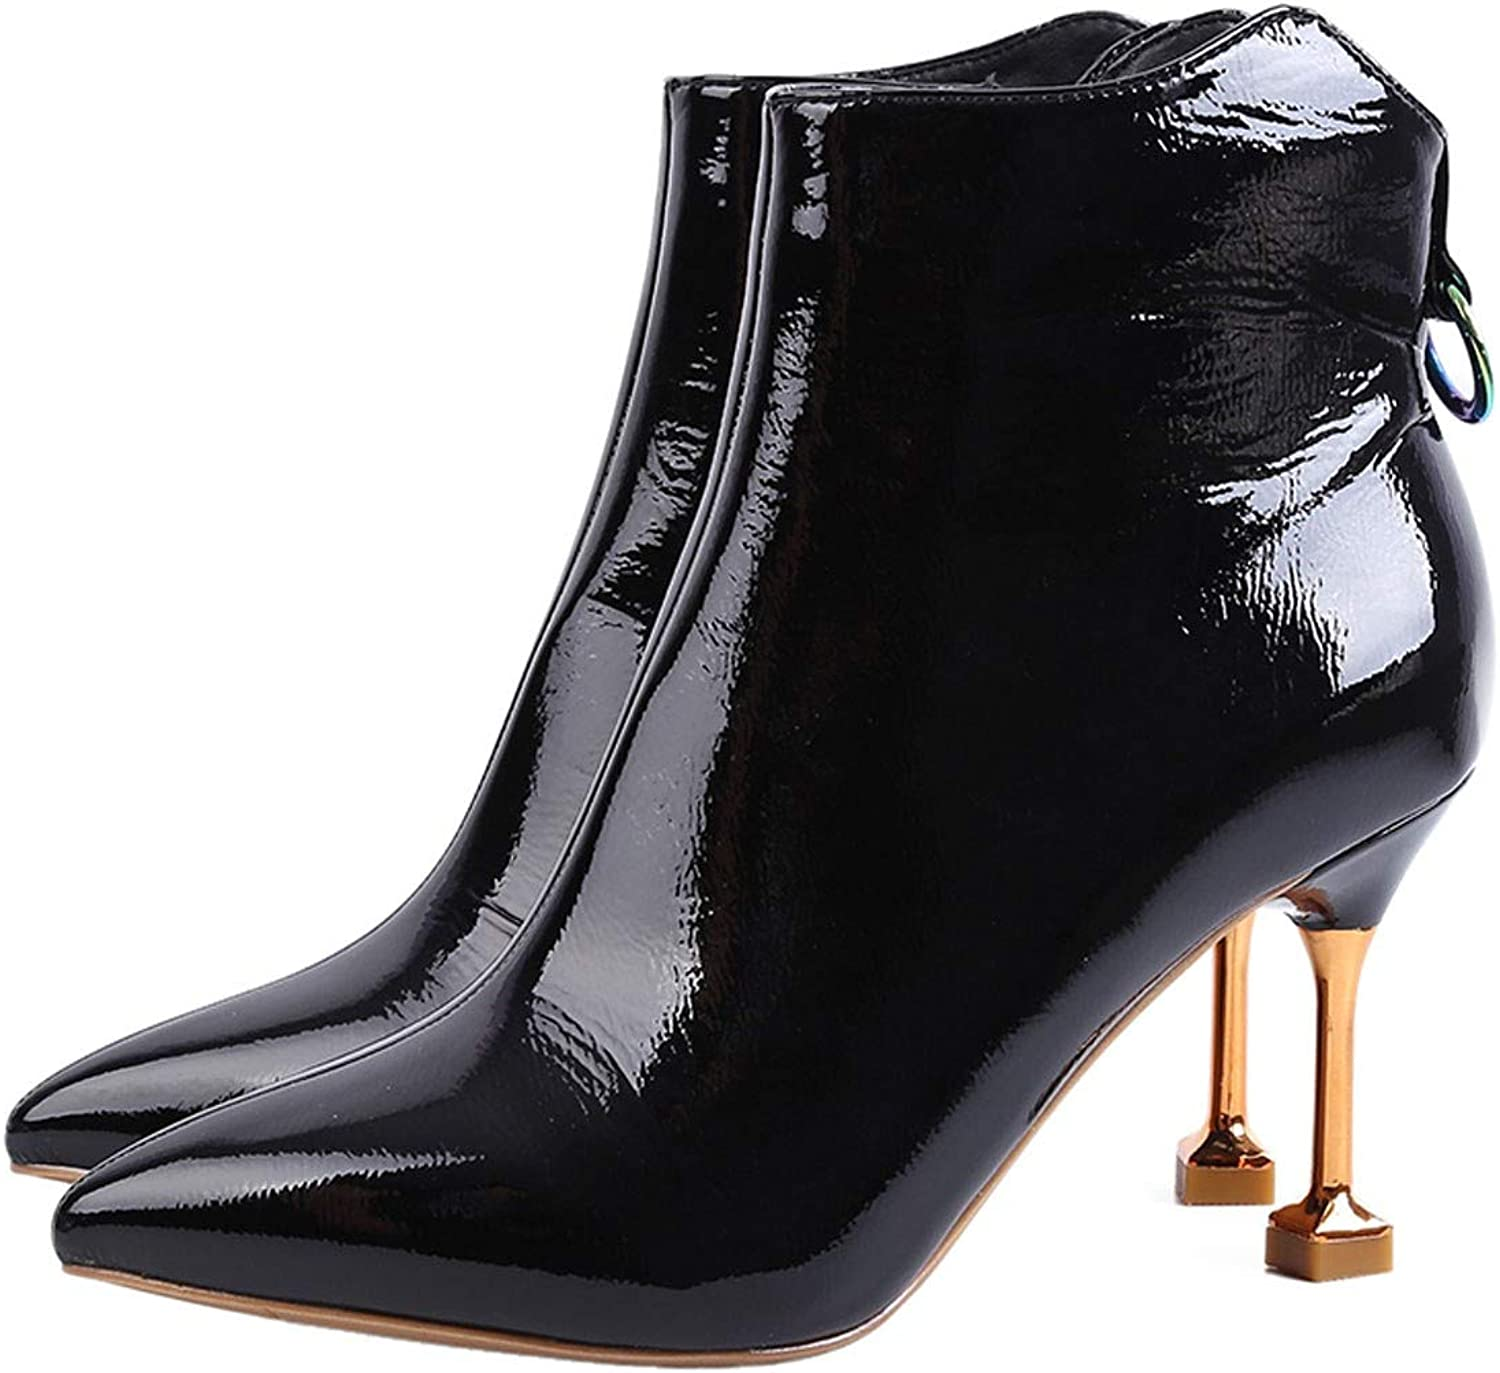 GTVERNH Women's shoes Side Zipper Temperament Boots Fine Heels Shiny Leather High Heels 7Cm Martin Boots Pointed Ankle Boots Women's shoes Fashion